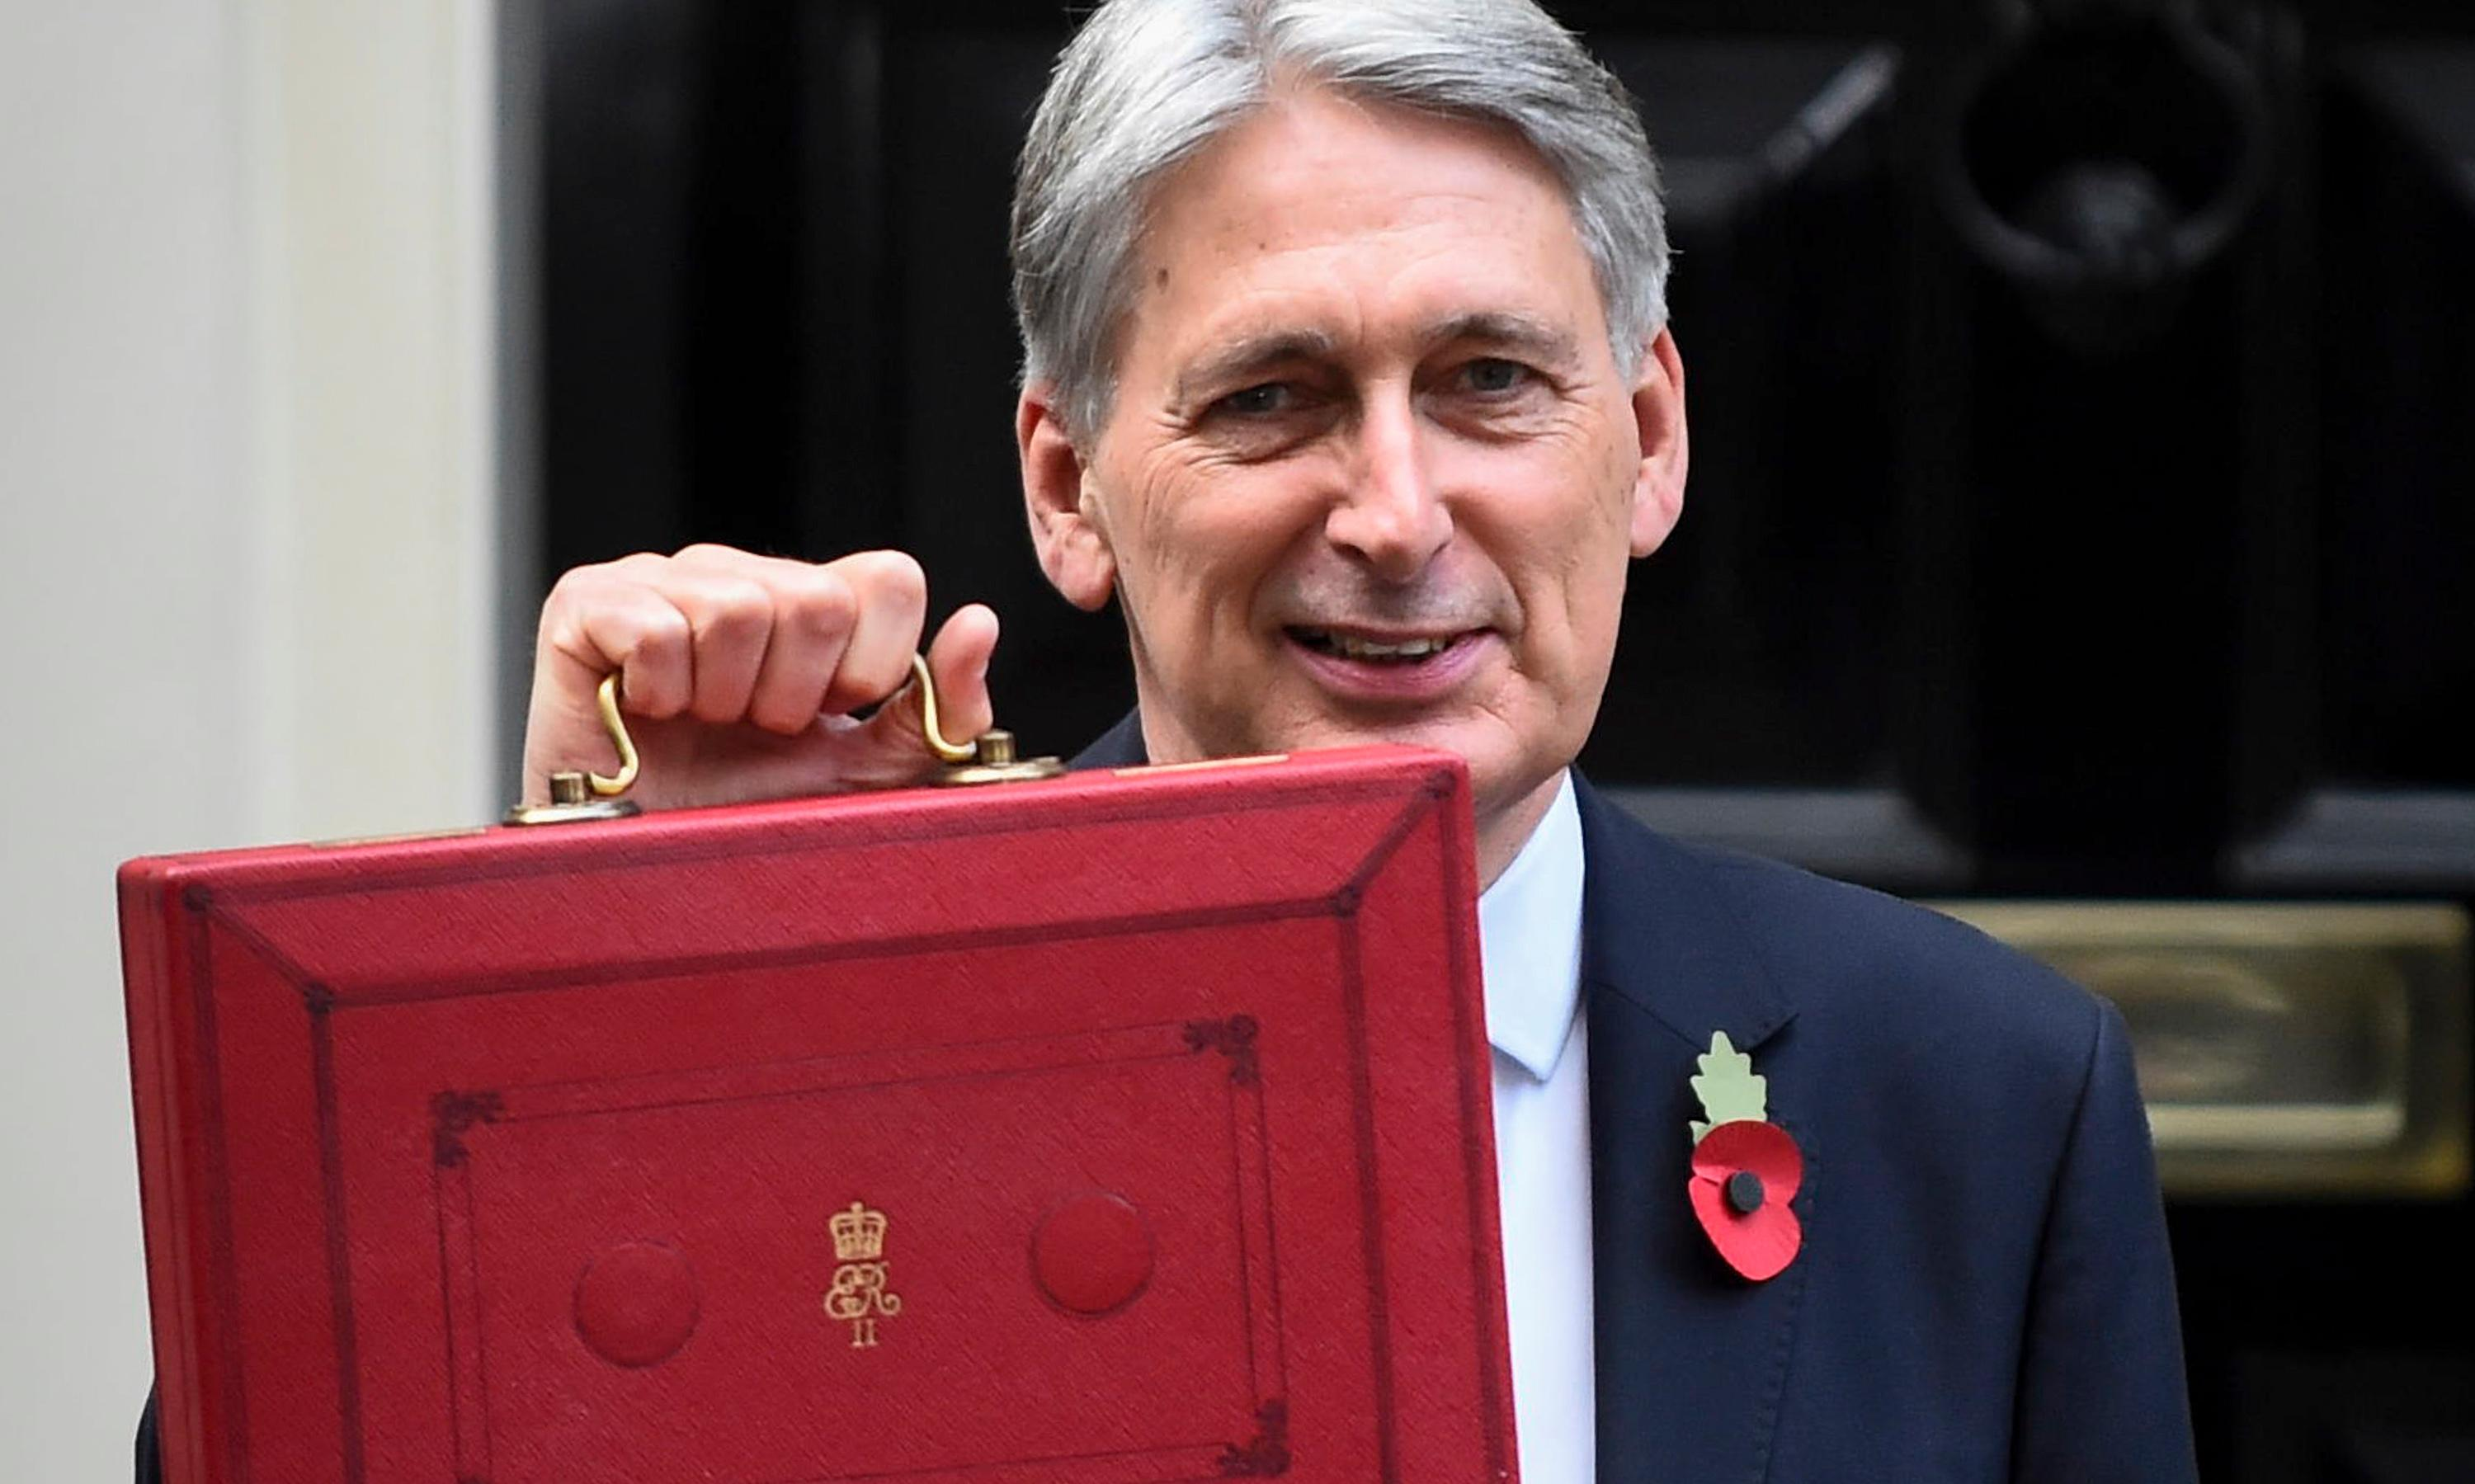 If austerity is (almost) over, what was it anyway?